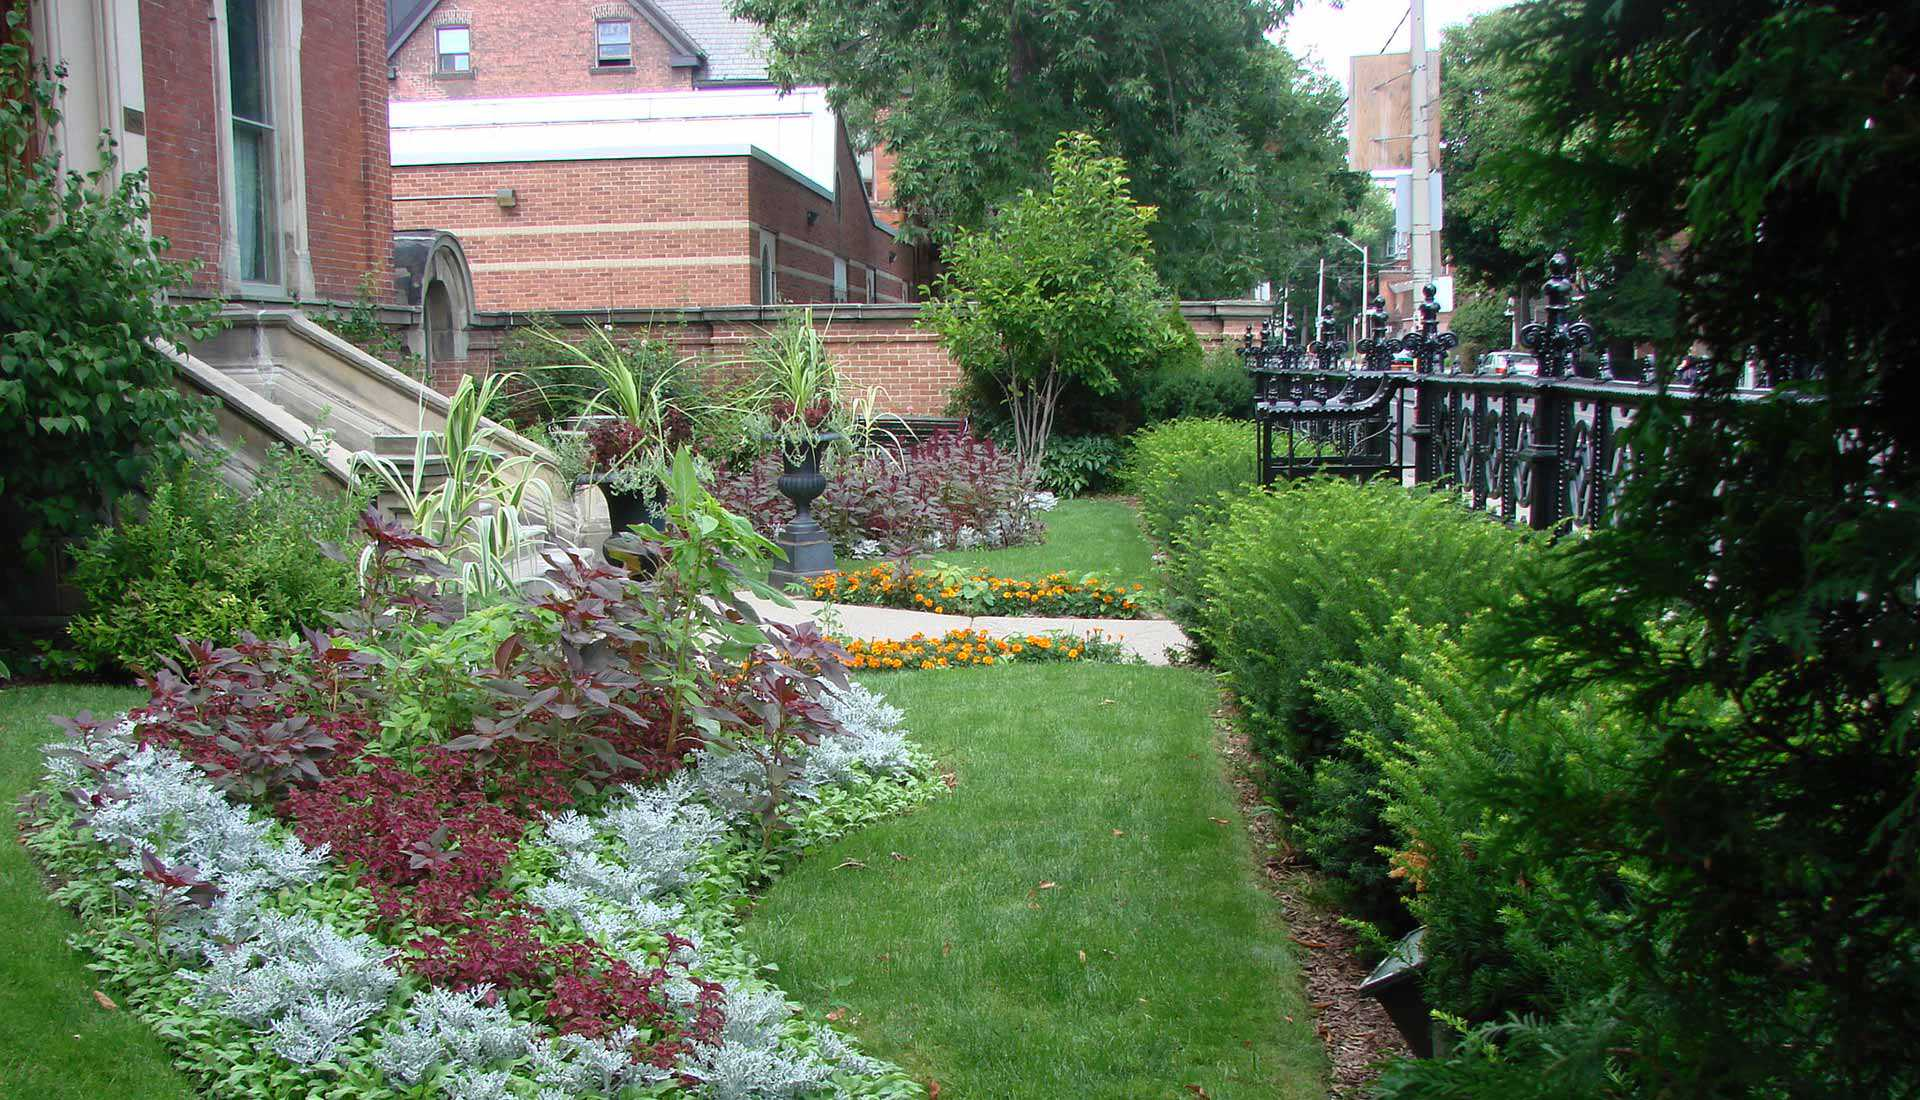 Gardens at George Brown House, Toronto